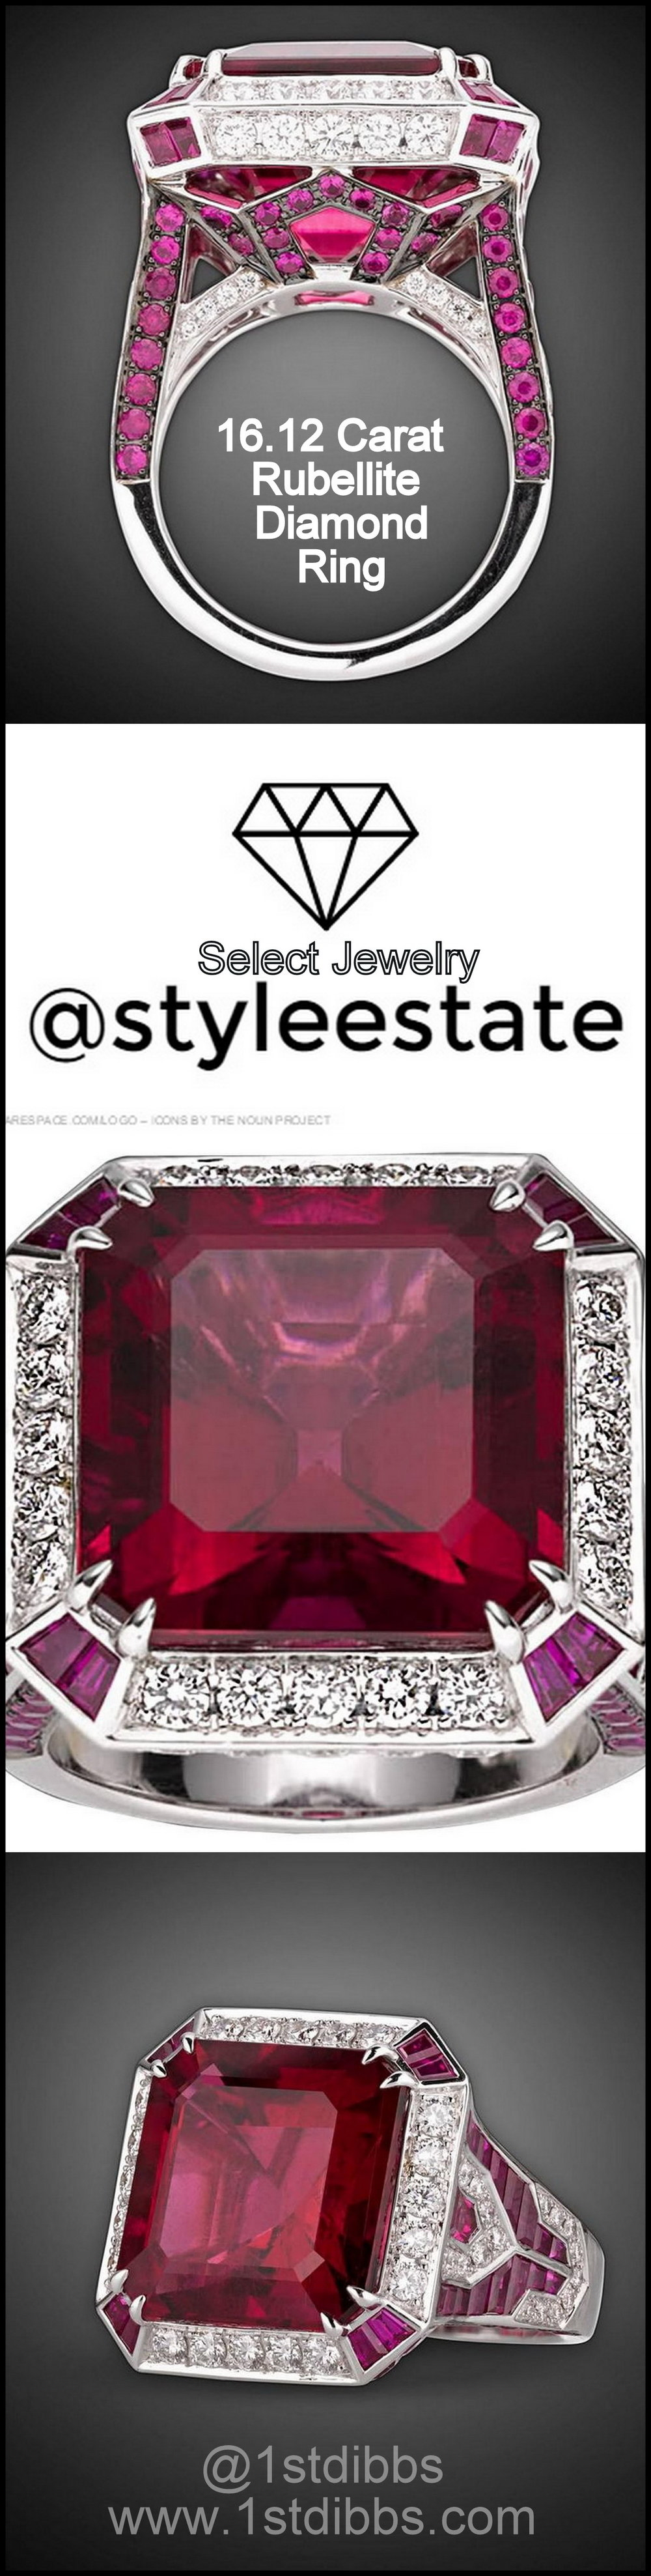 16.12 Carat Rubellite Diamond Ring